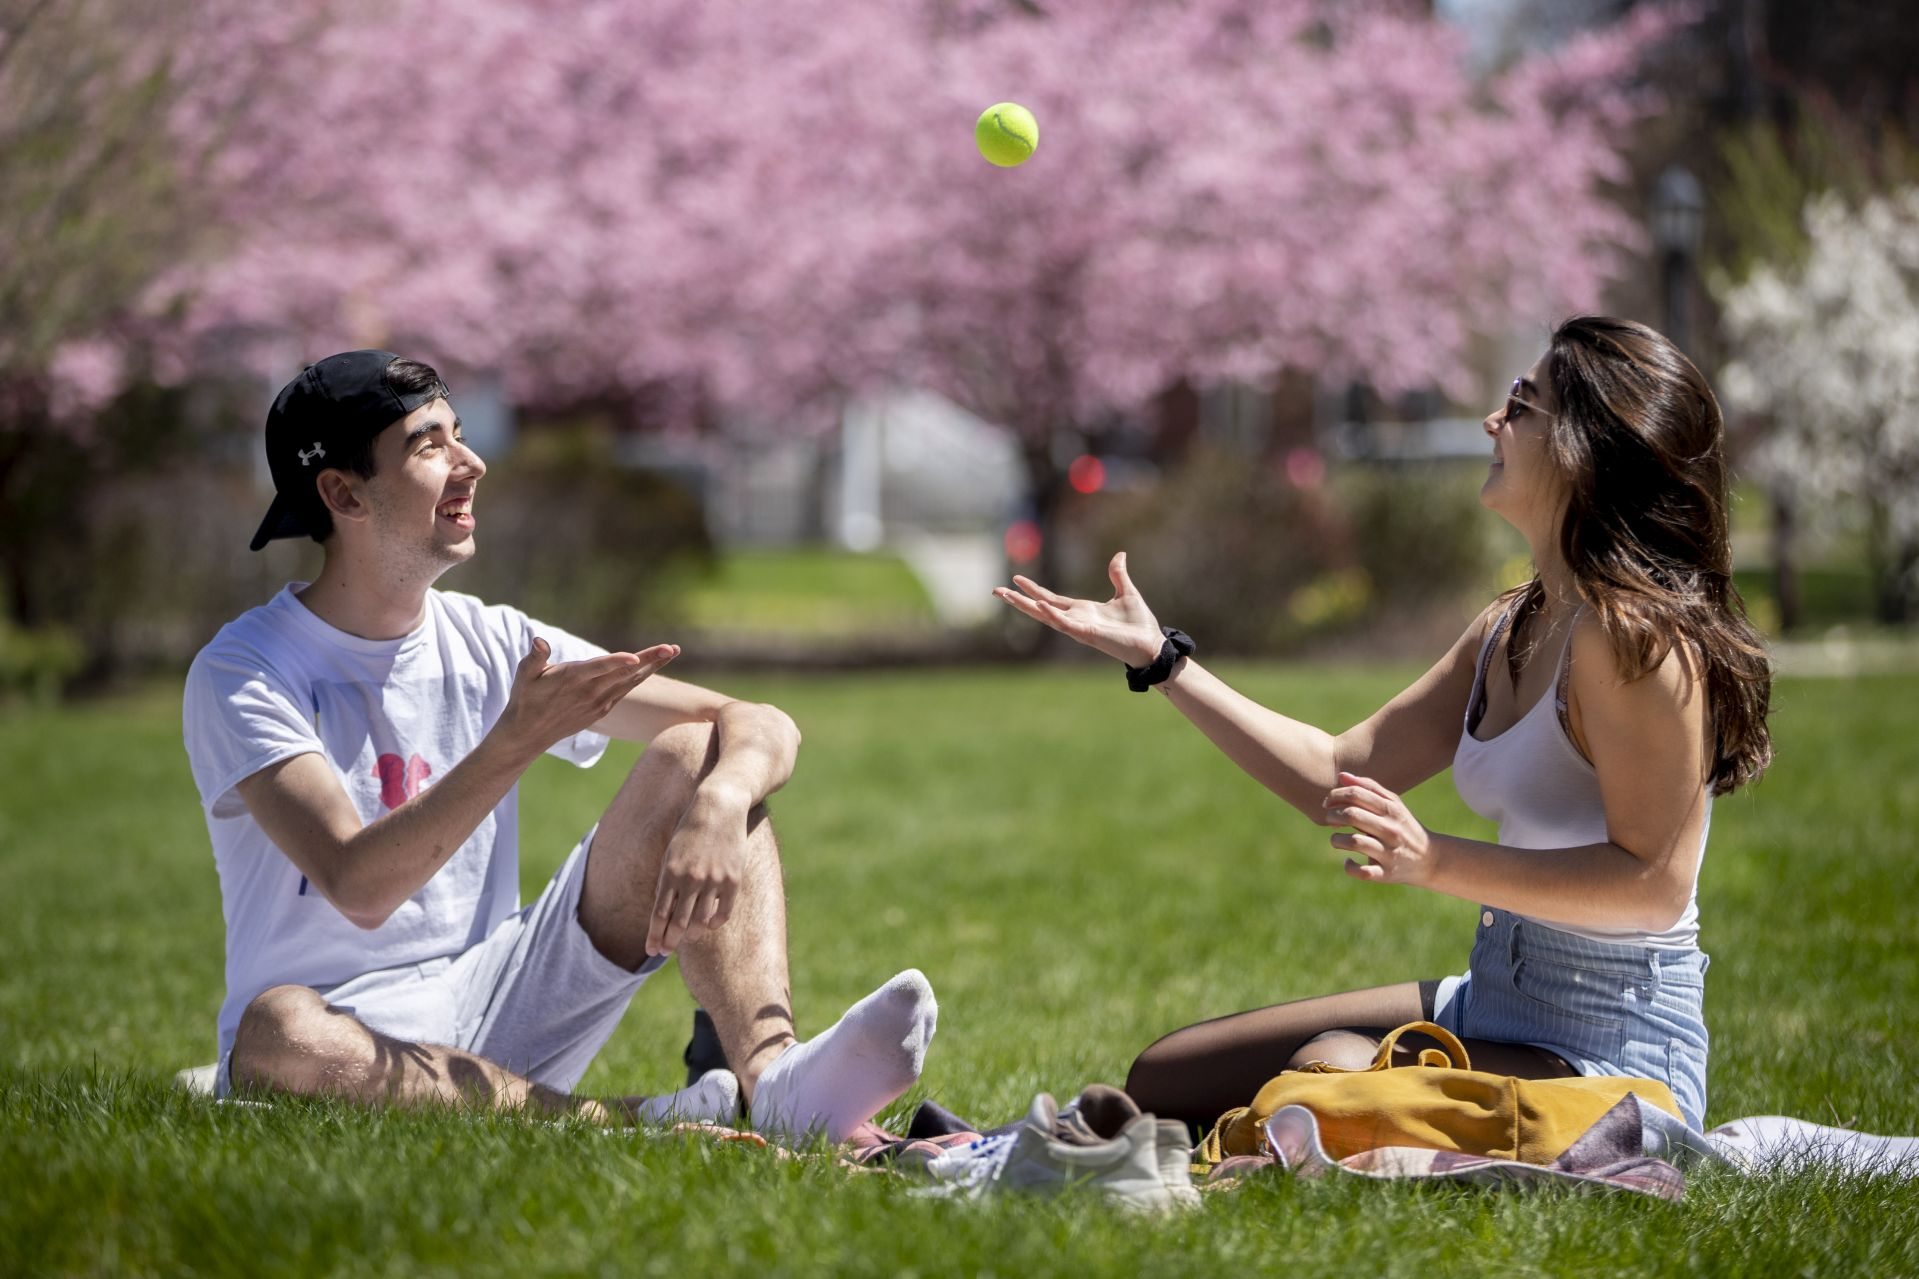 "After a week of rain, a warm and sunny day filled with the sights and sounds of spring. ""We're enjoying the first day that actually says like Short Term, says Anais Ranque '21, a double major in music and psychology from Vesenaz, Switzerland, as she tosses a tennis ball with Jake Bart '21, a psychology major from New York City. The two took to the lawn outside of of 280 College Street, where, like many of their classmates, they soaked up the Monday afternoon sun. ""It's been a long, cold winter,"" Bart said."